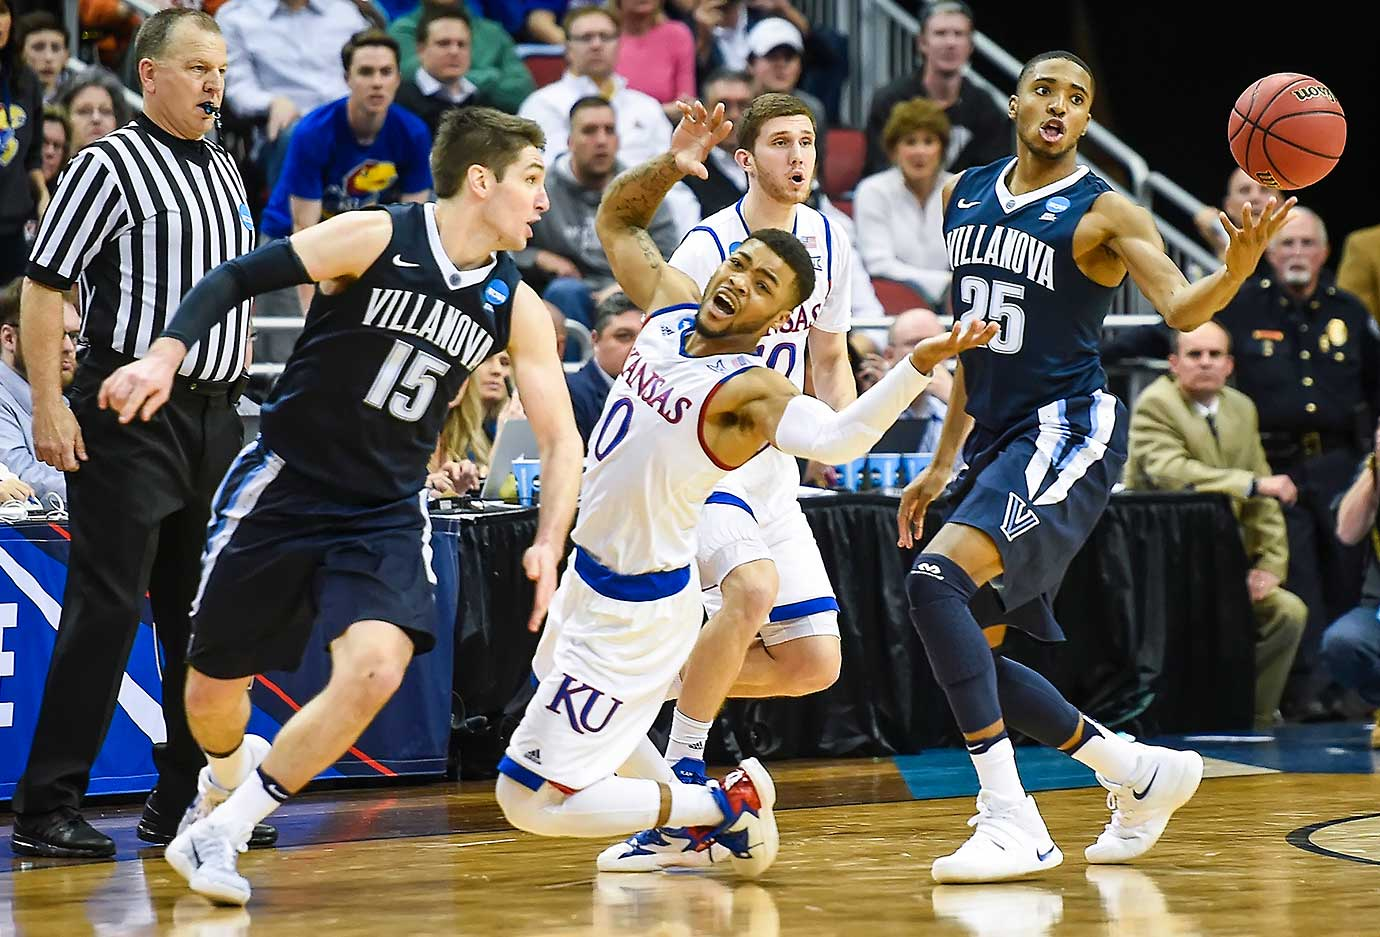 With Kansas down three points with 25 seconds left, Wildcats guard Frank Mason III had the ball slapped away by Ryan Arcidiacono (15) — game over.